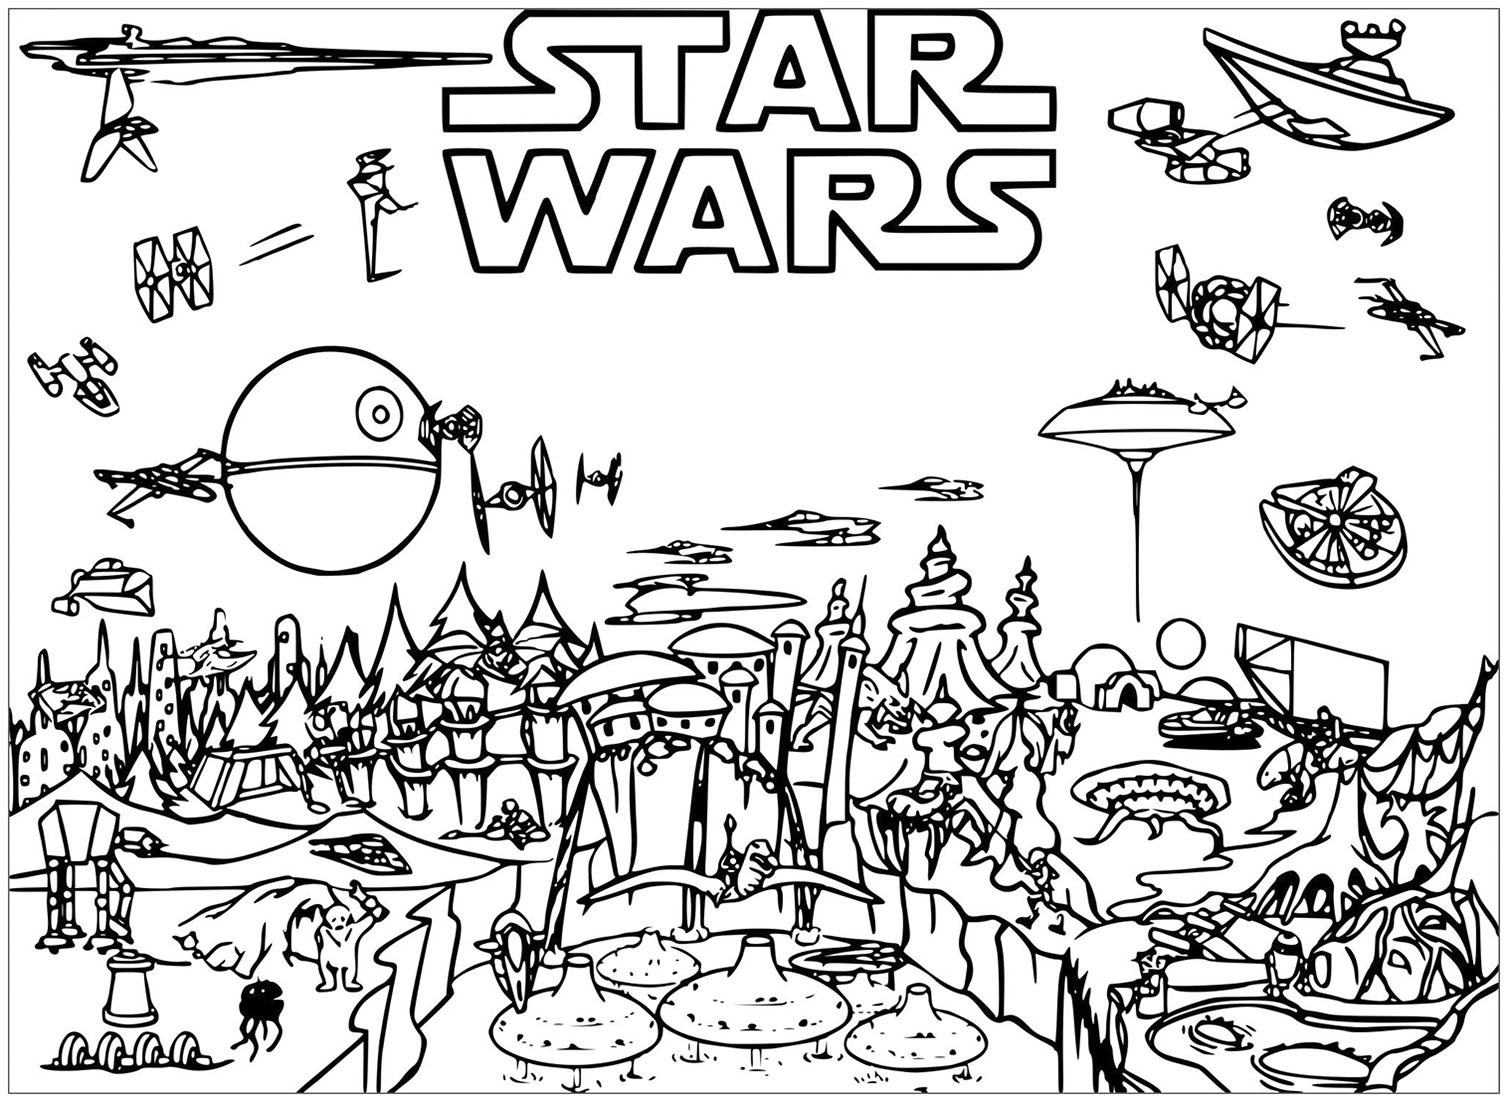 Star Wars coloring page - Coloriage Star Wars - Coloriages ...